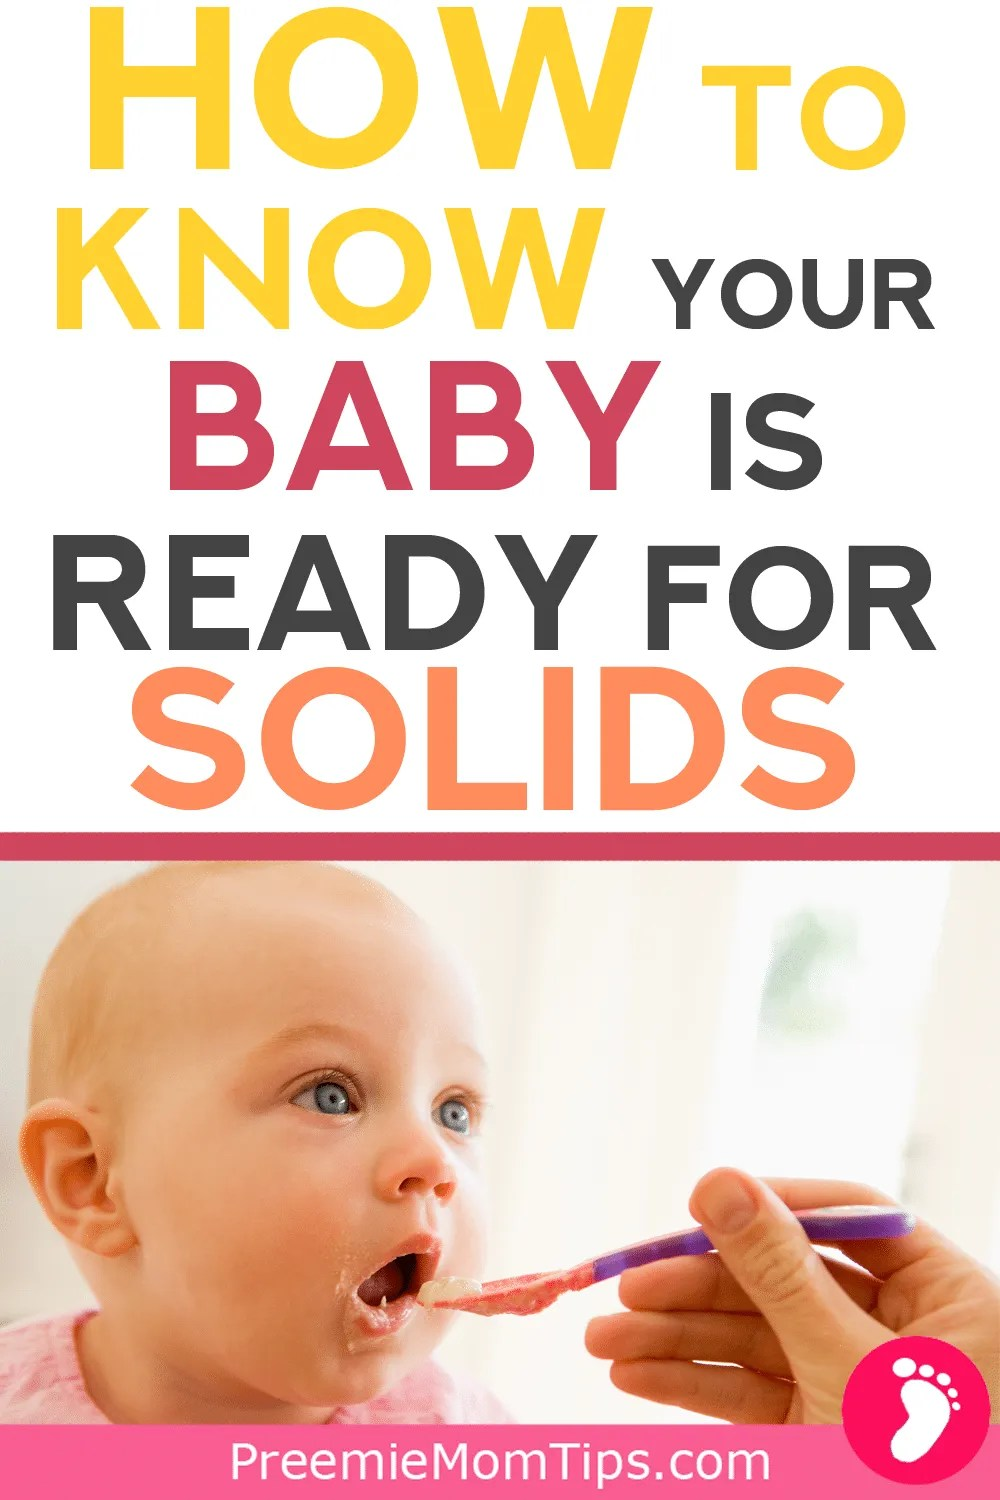 Starting baby on solids: How to know your baby is ready to start solids